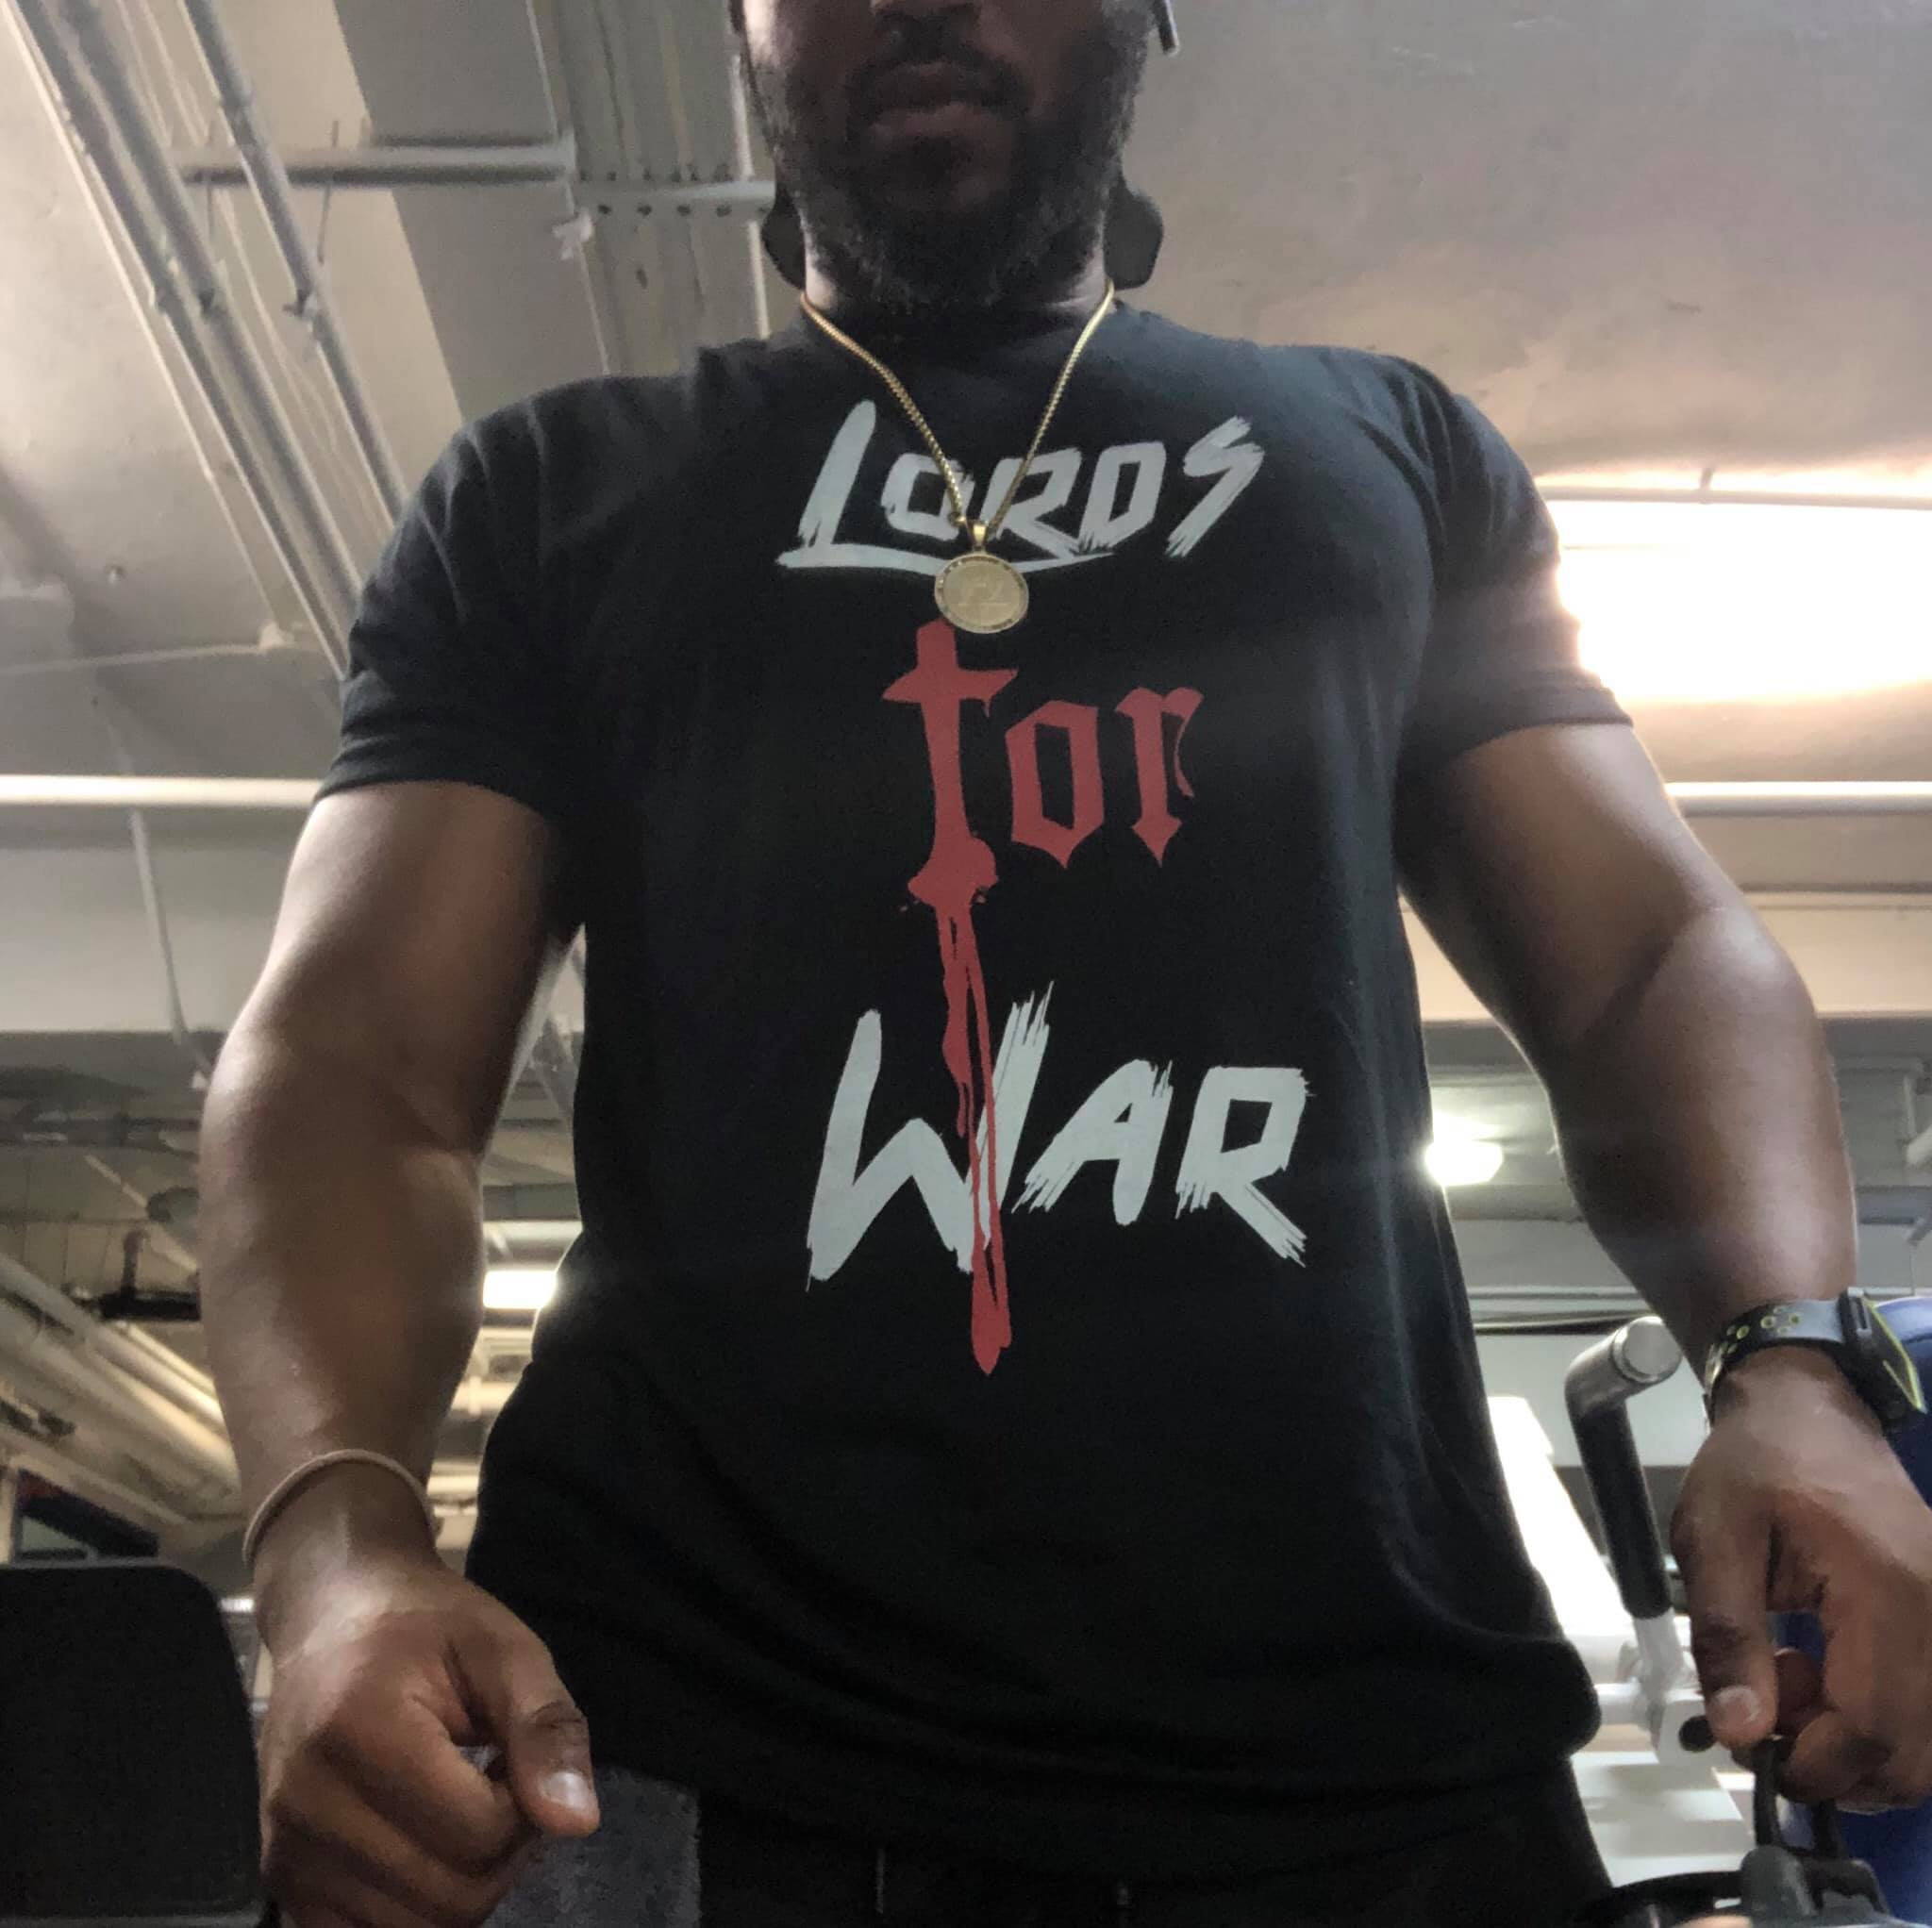 Lords For War T-Shirt